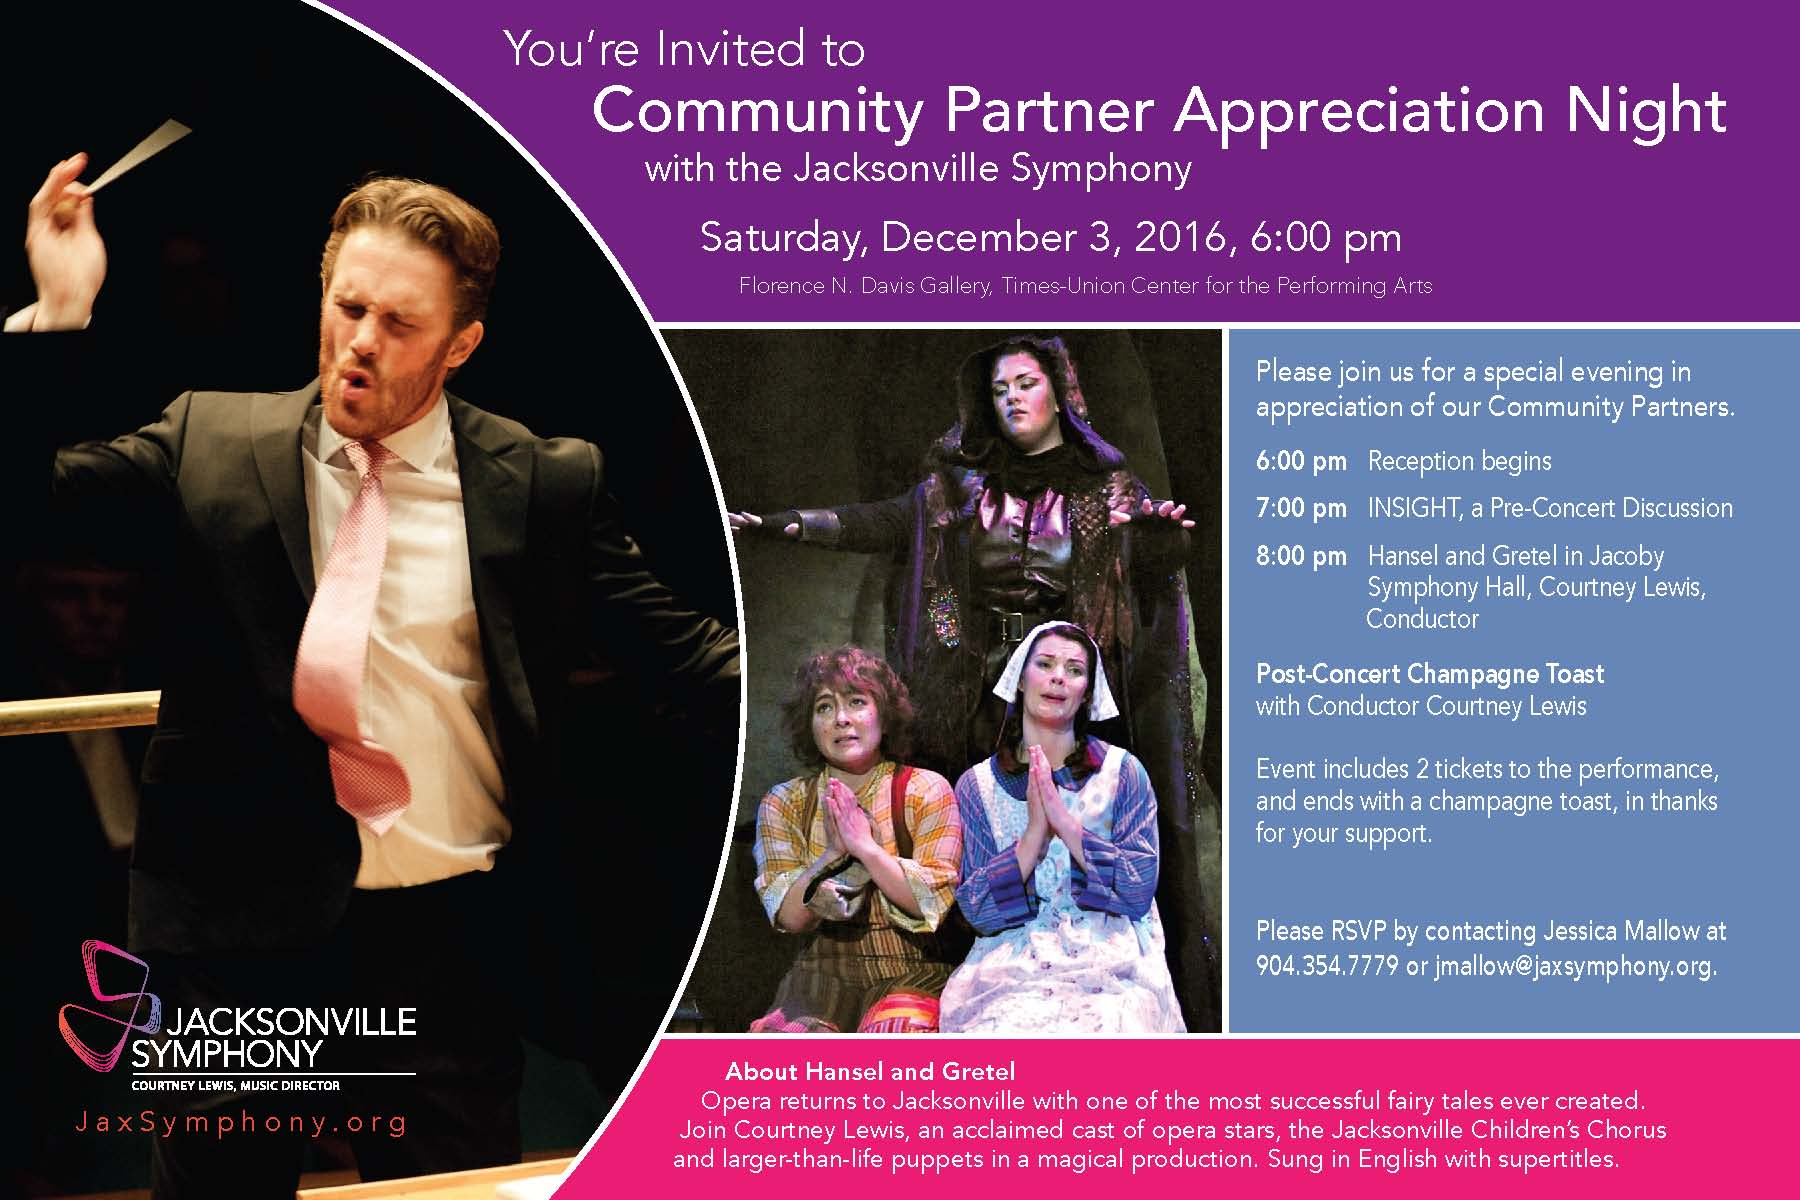 community-partner-appreciation-night-december-3-2016